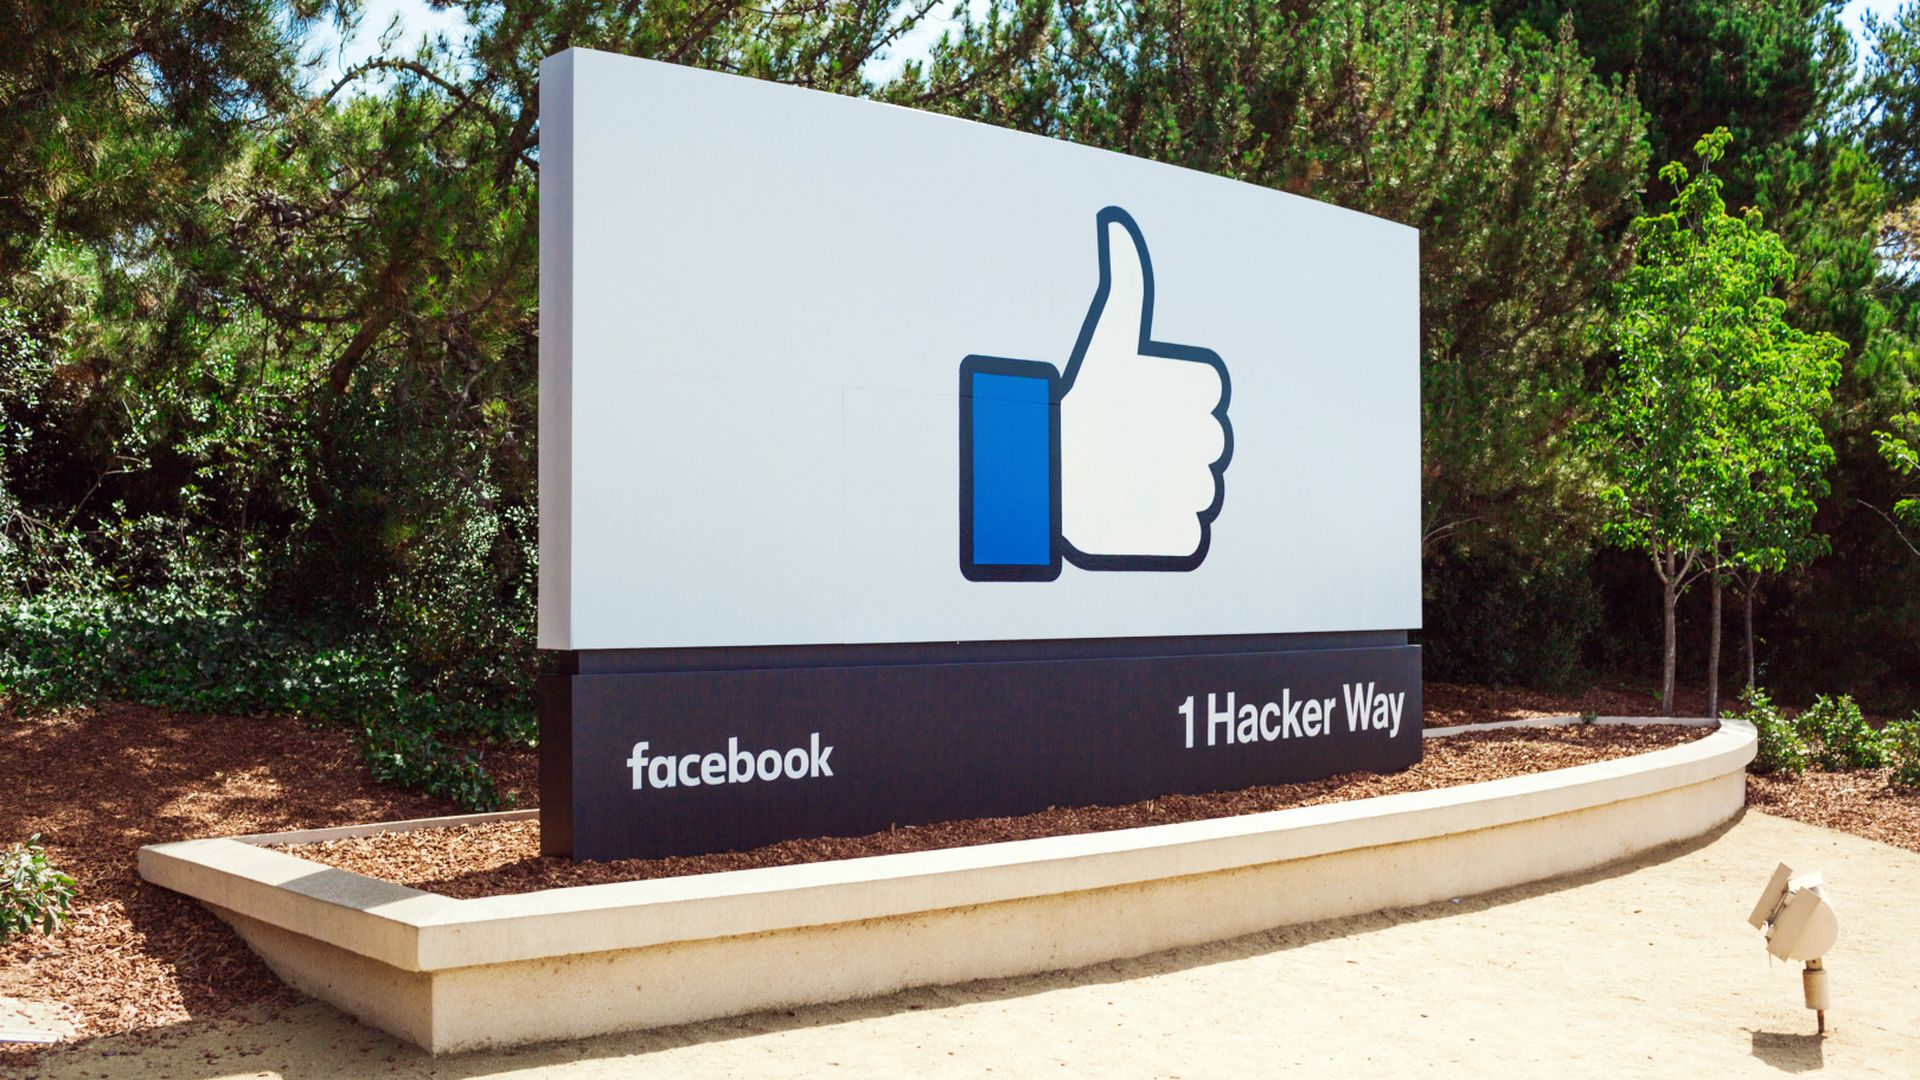 A thumbs up sign on the Facebook HQ in Menlo Park, Calif.